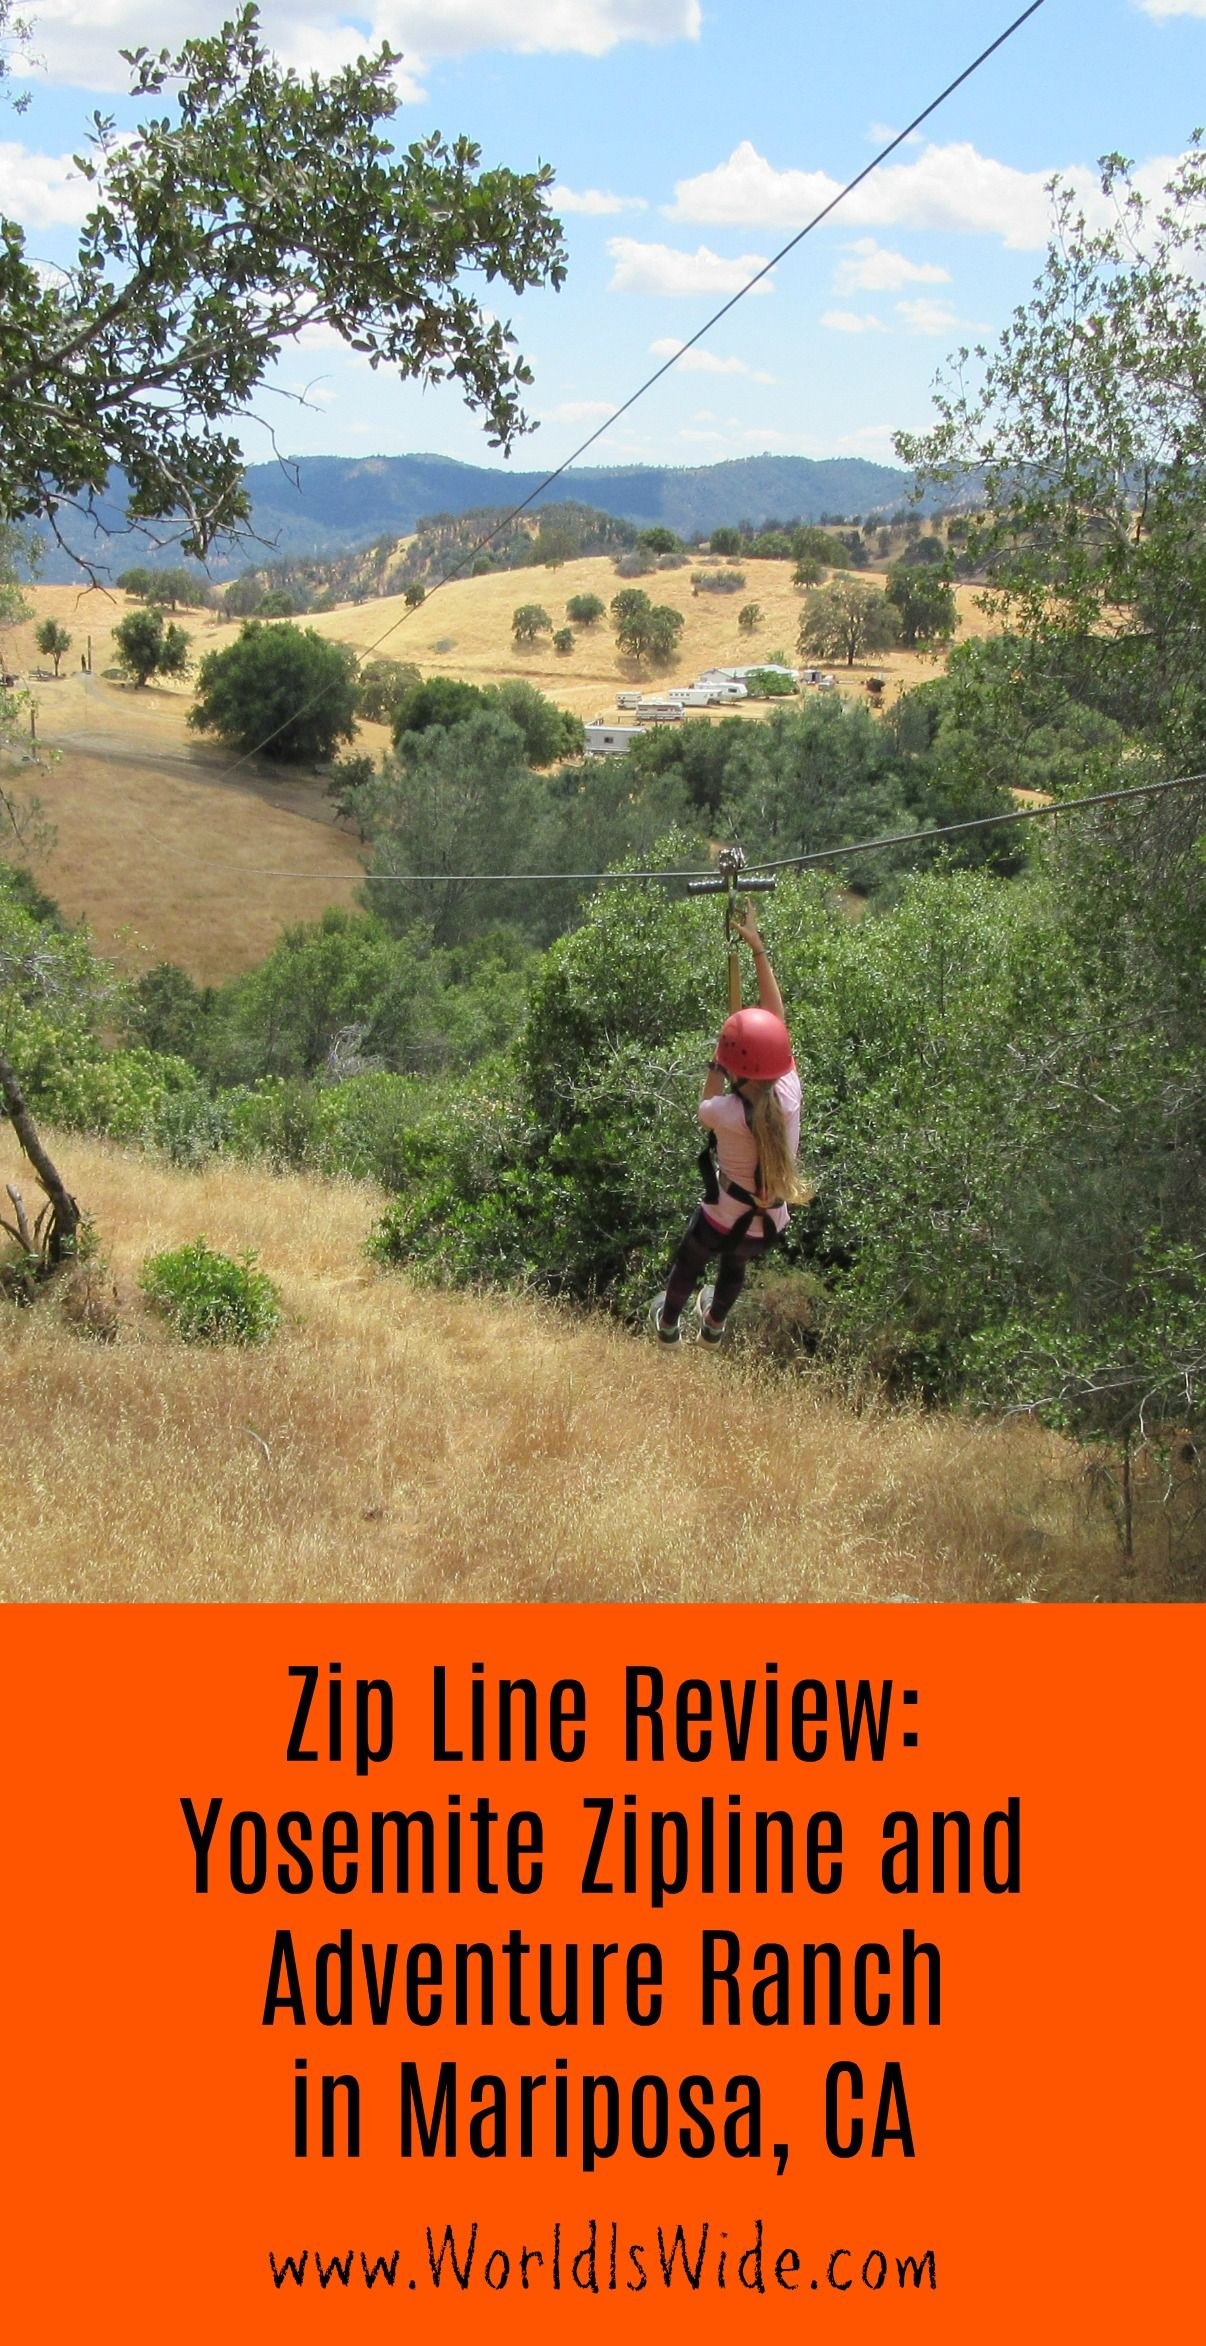 Yosemite Zipline And Adventure Ranch In Mariposa California Our Review World Is Wide California Travel Usa Travel Guide Ziplining